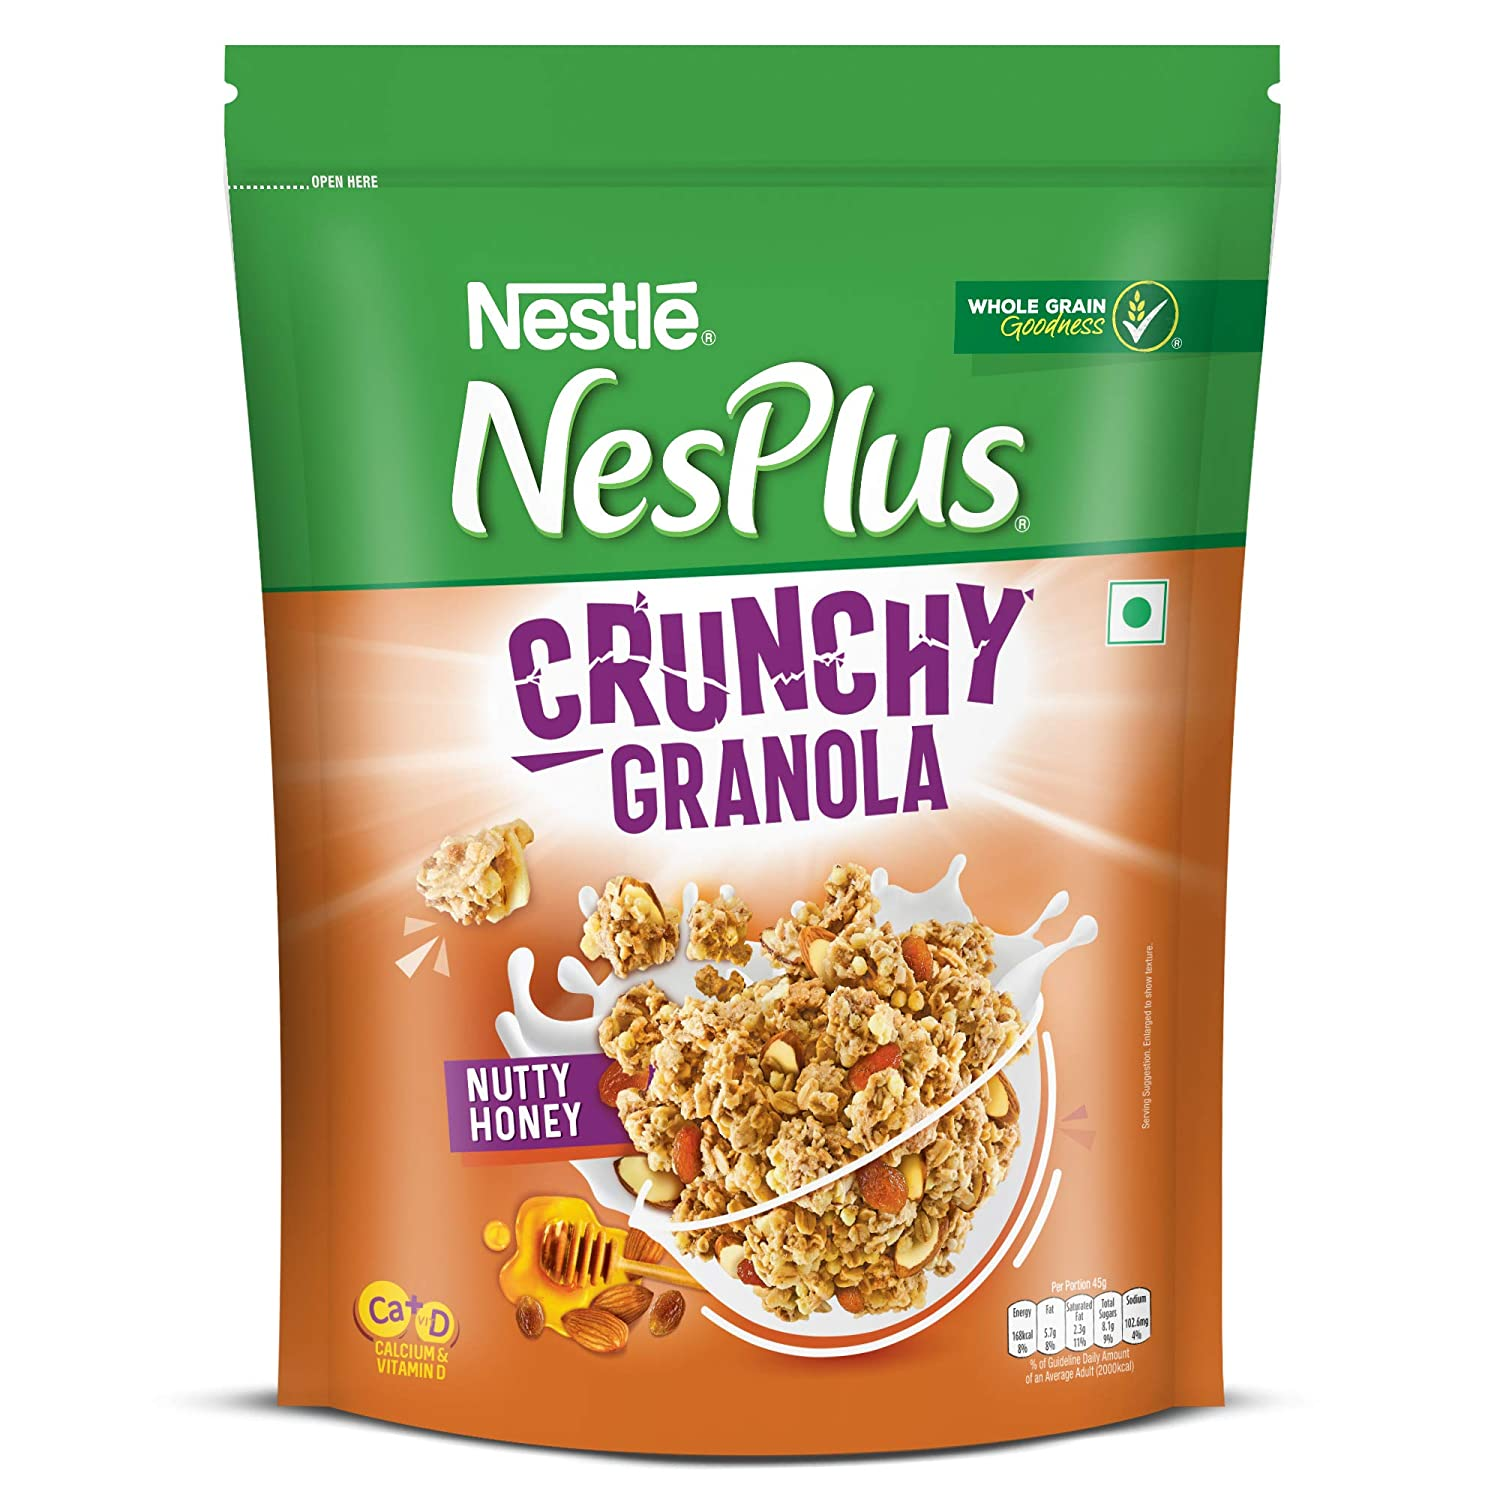 NesPlus Crunchy Granola with Nutty Honey